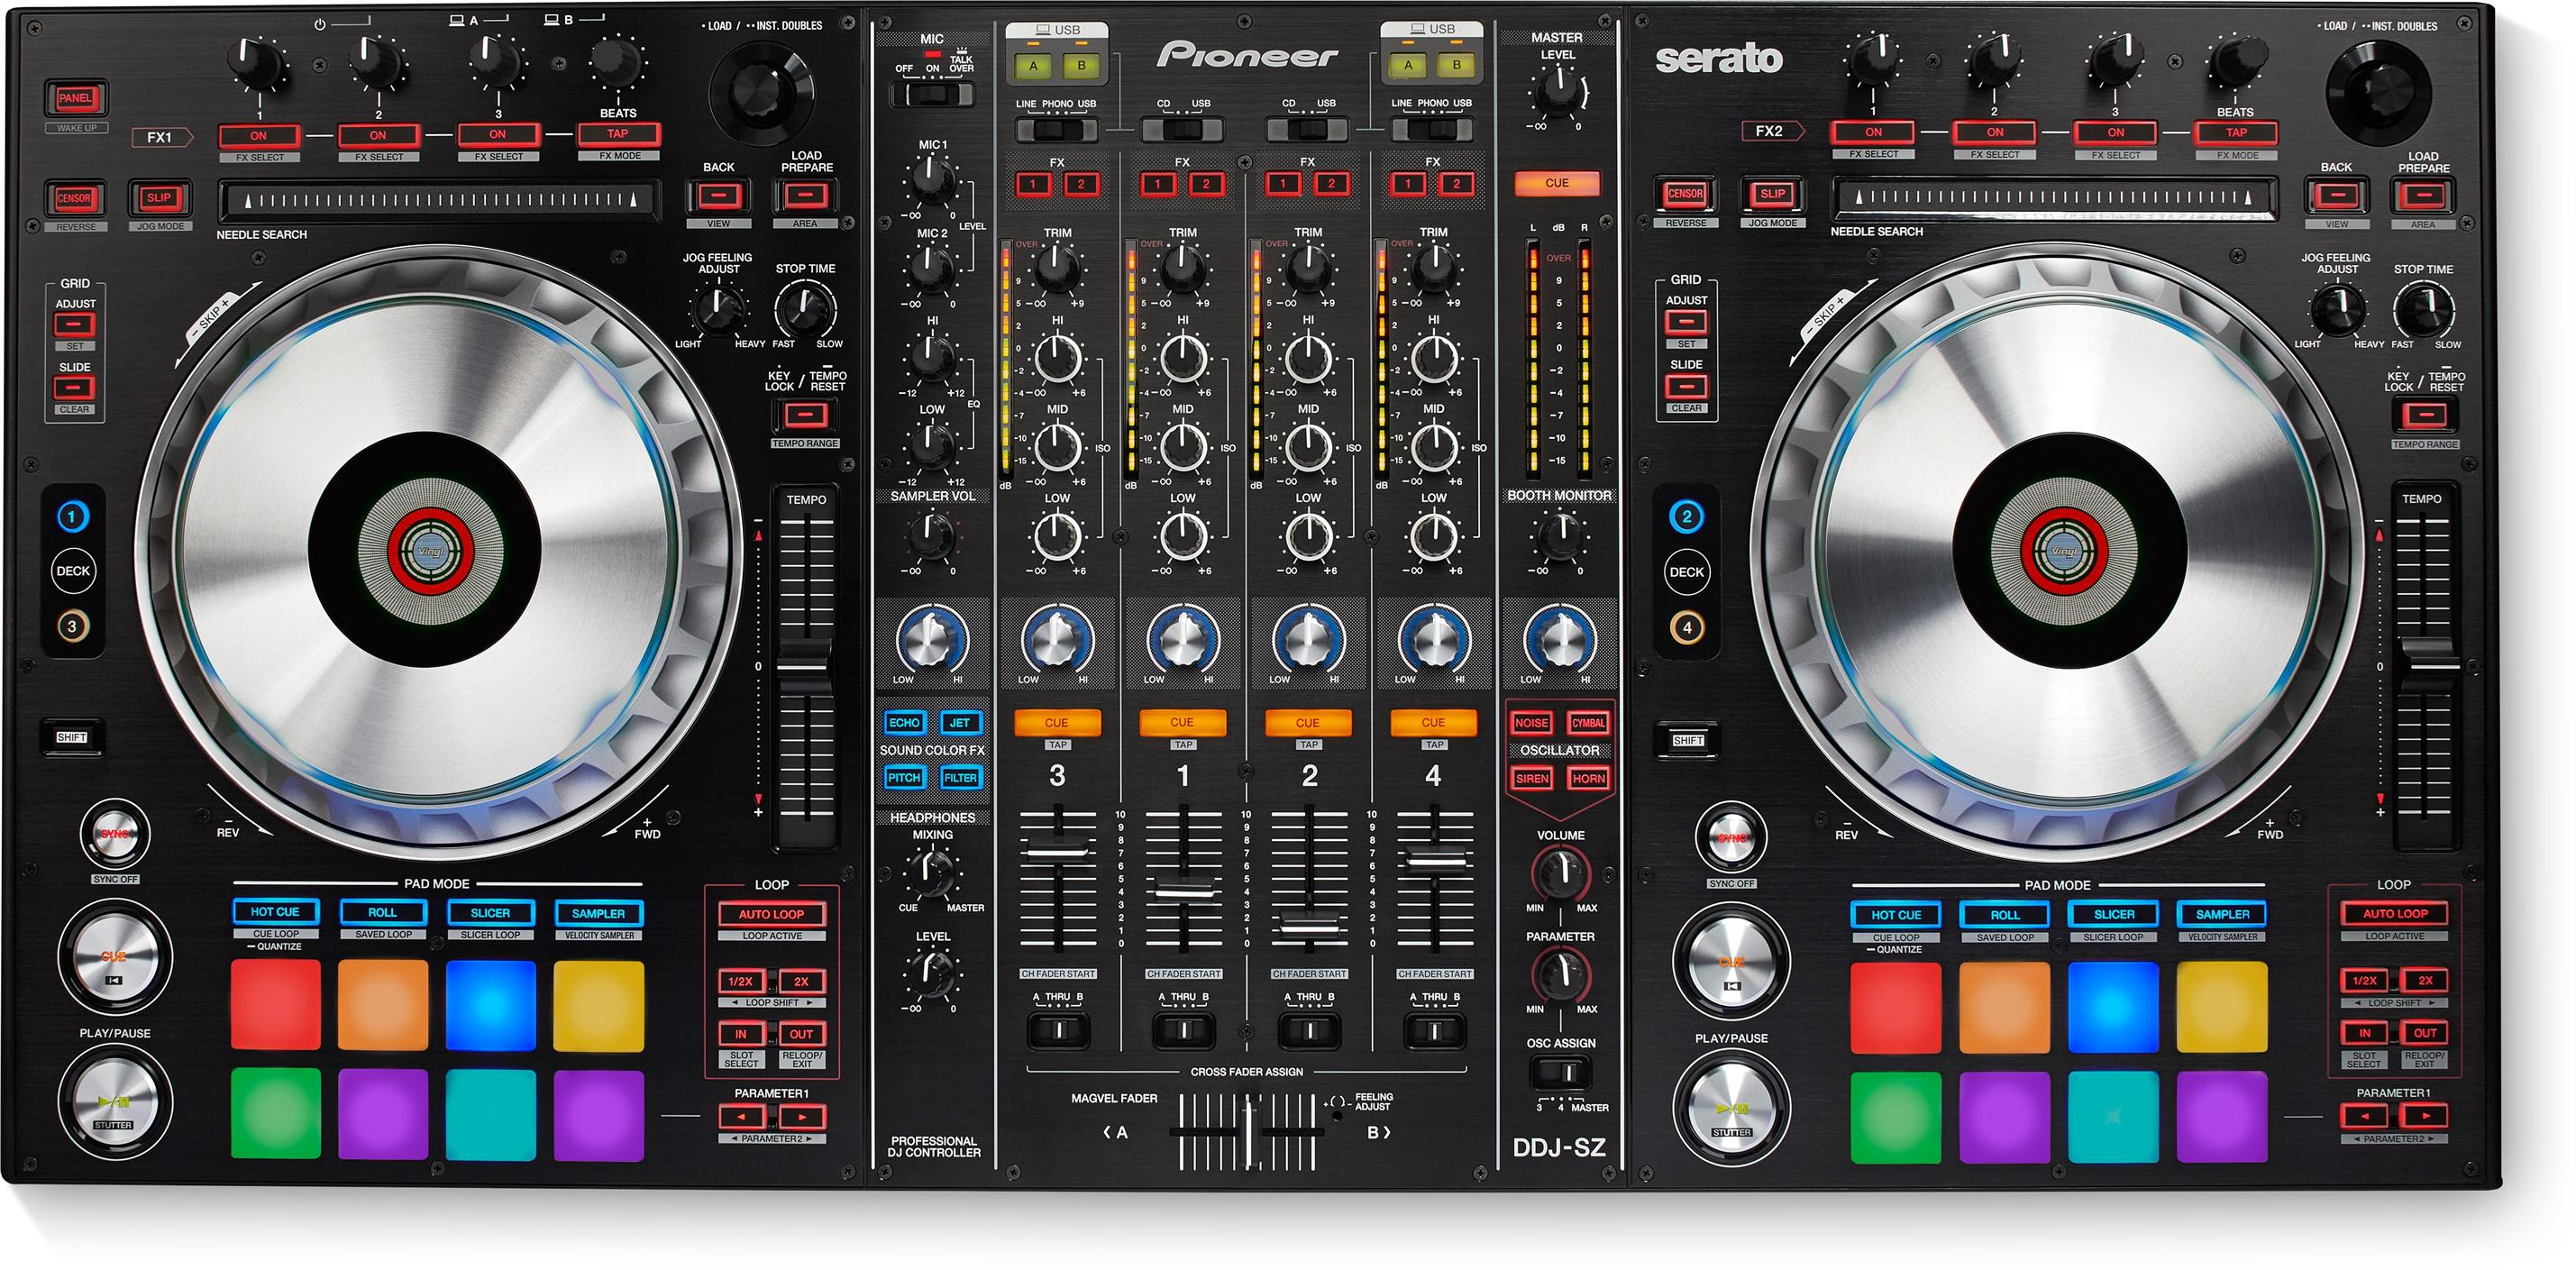 PIONEER DDJ-SZ - Flagship 4-Channel Controller for Serato DJ